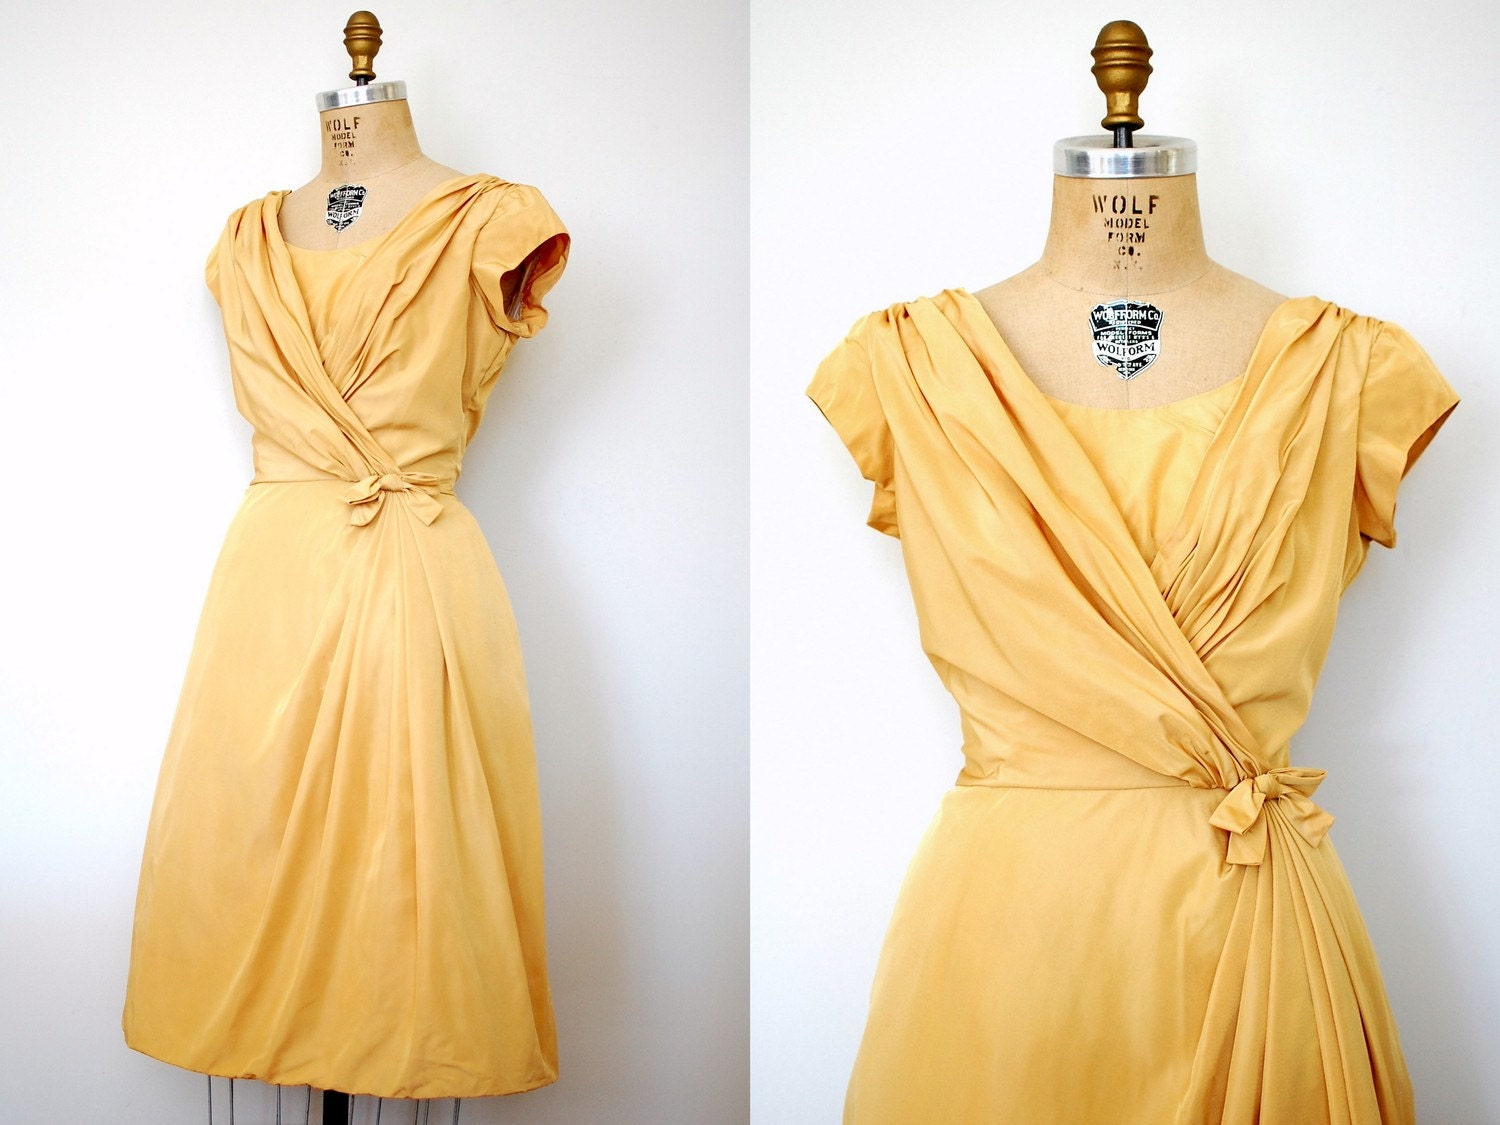 vintage 1950s The Plot Thickens Dress (50s)